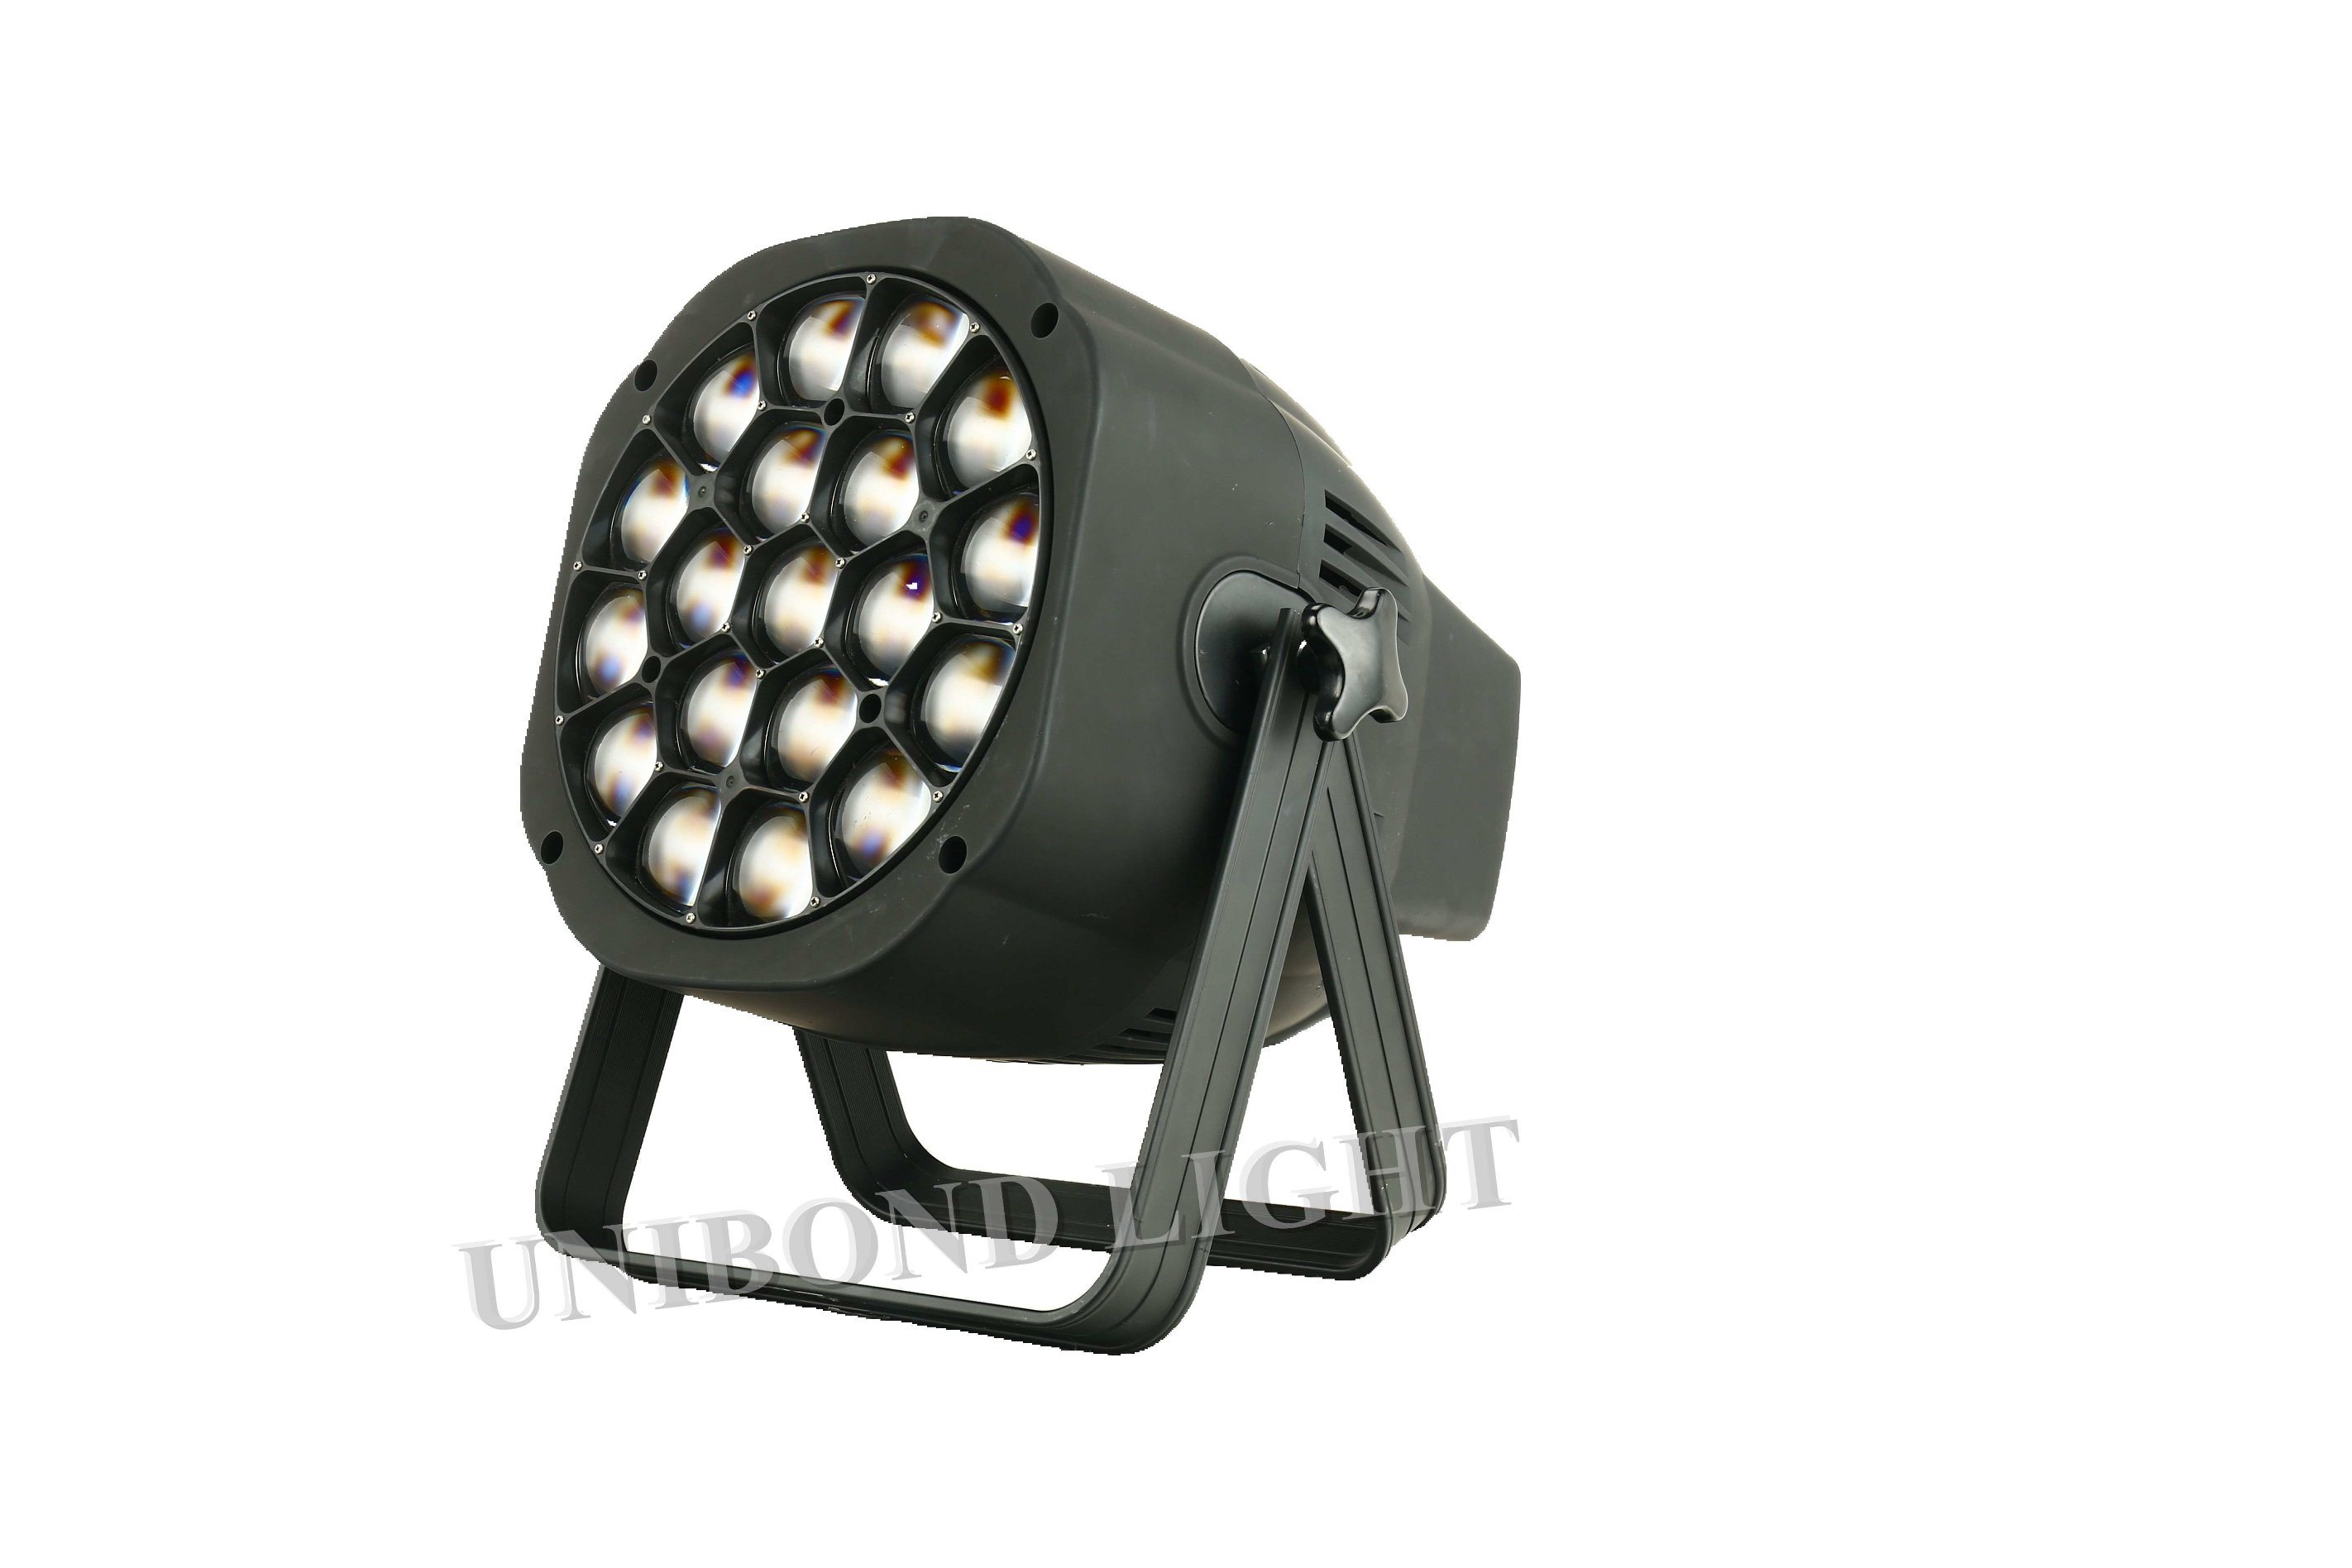 LED Lighting 19*15W High Power RGBW 4 in 1 Beeye PAR Light Stage Light